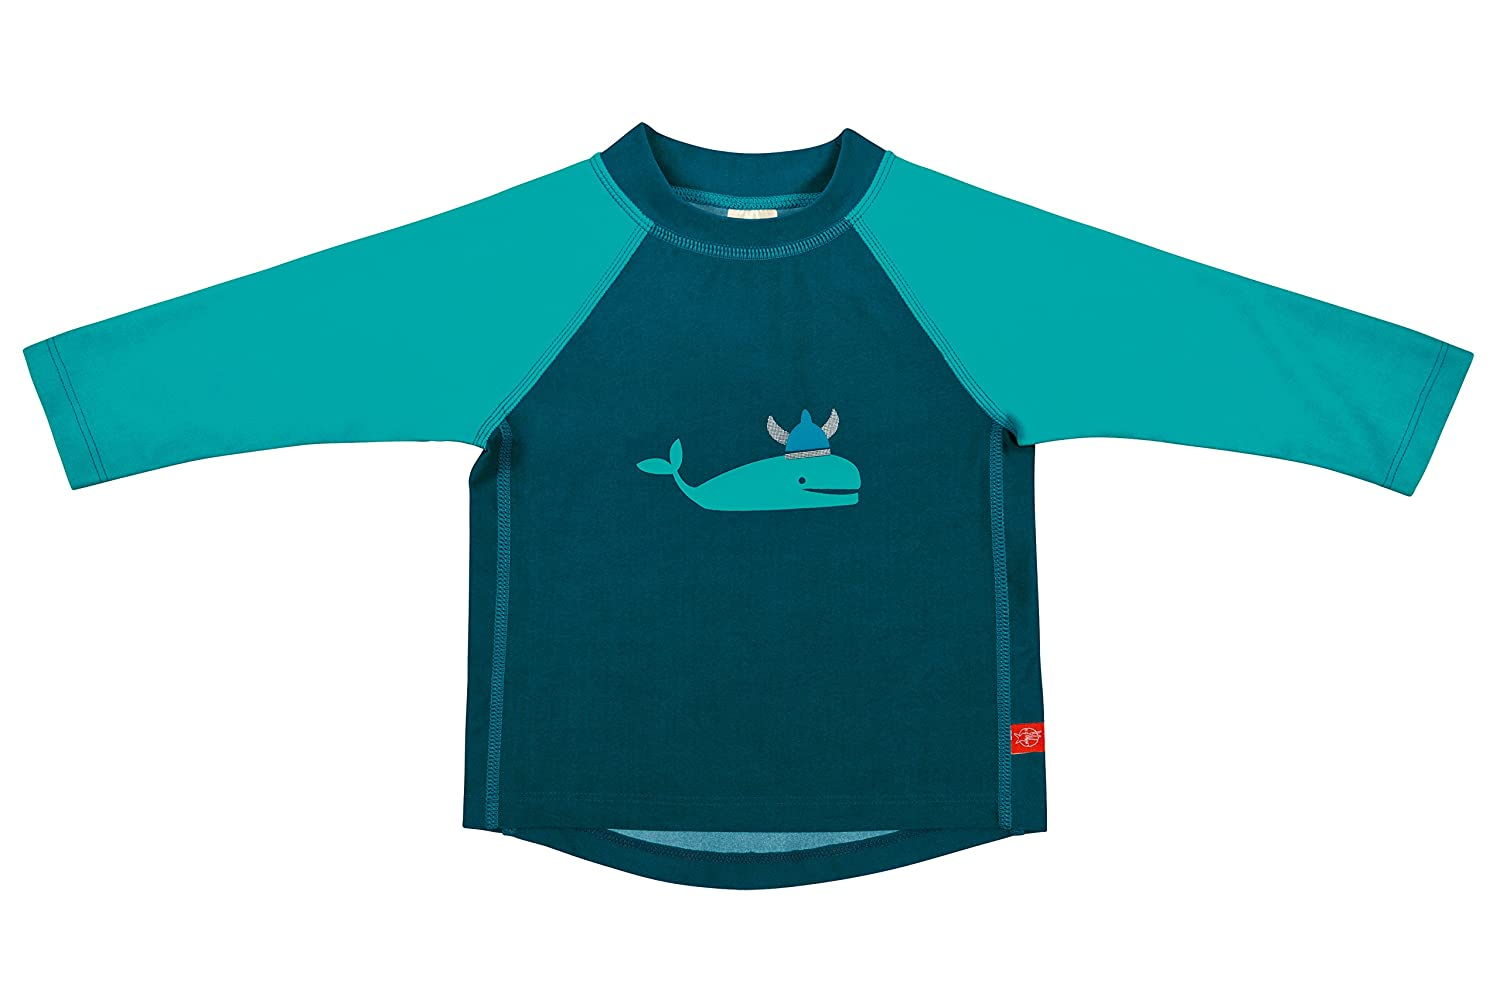 Lassig Baby Long Sleeve Rash Guard Swim Shirt boys UV-protection 50+ Blue Whale, L/18 Mo, Multicolor LSFRGLB304-18